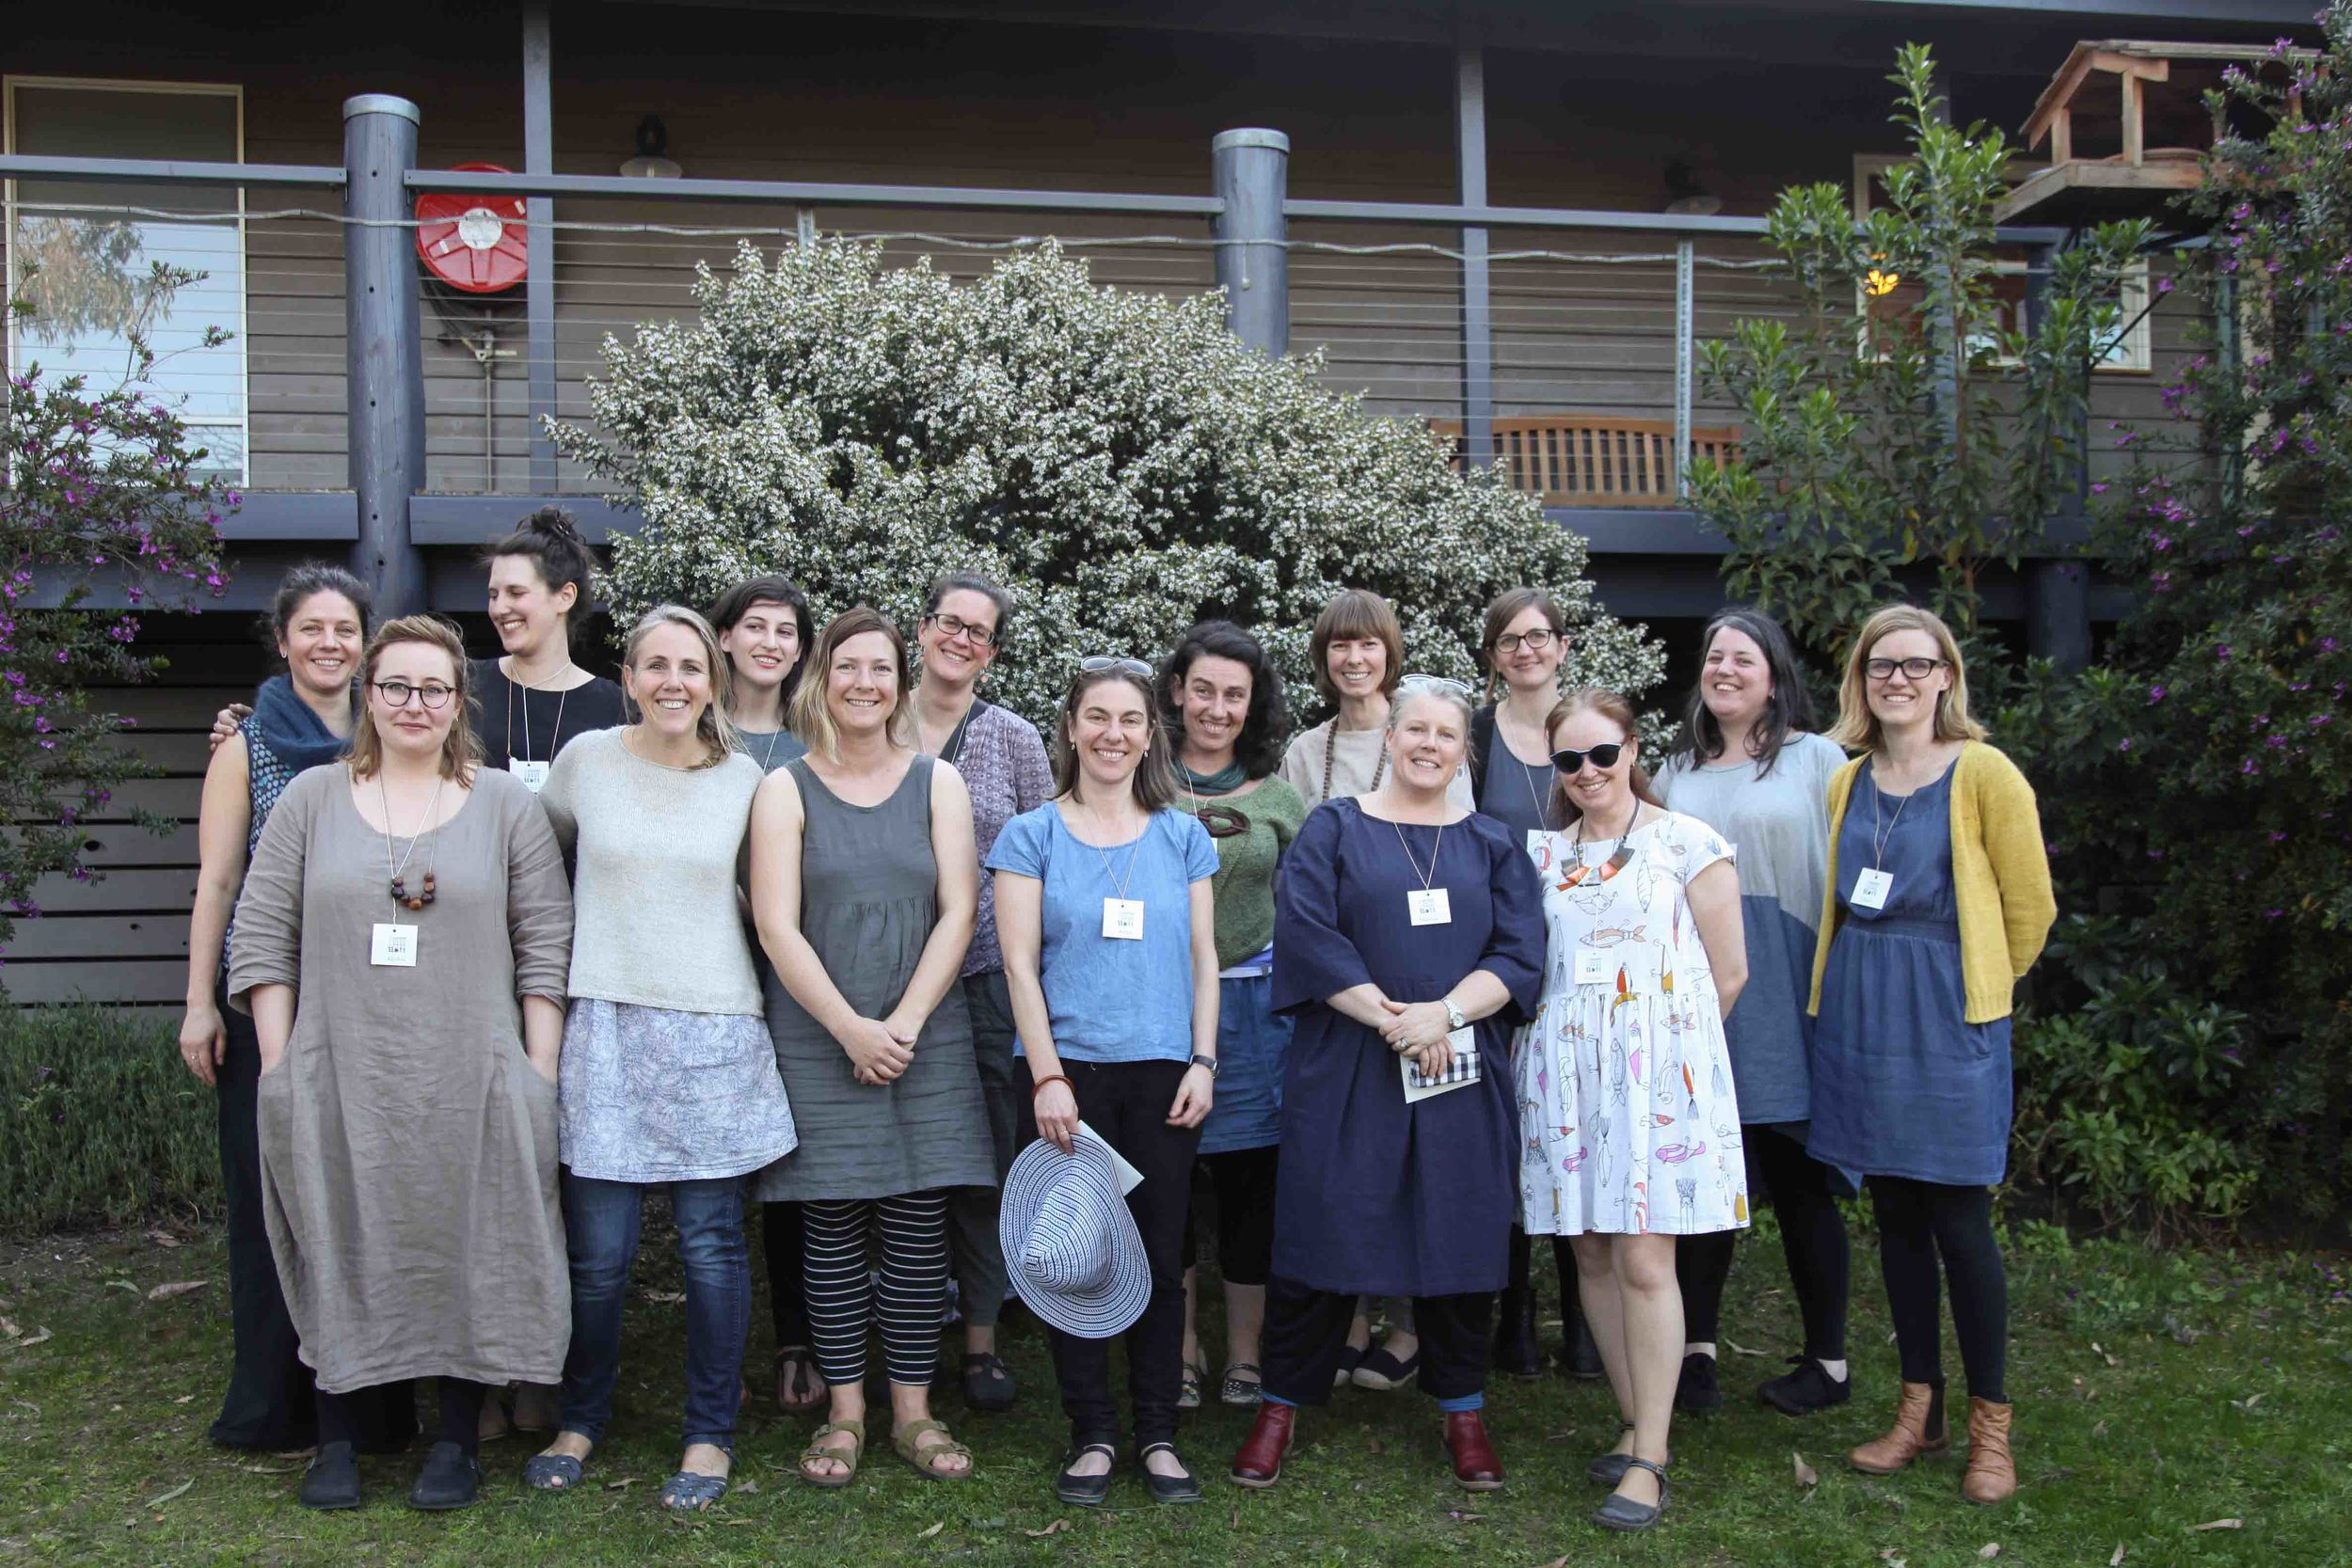 Teachers and us from last year's retreat. Look at all that handmade goodness! And happy faces. x